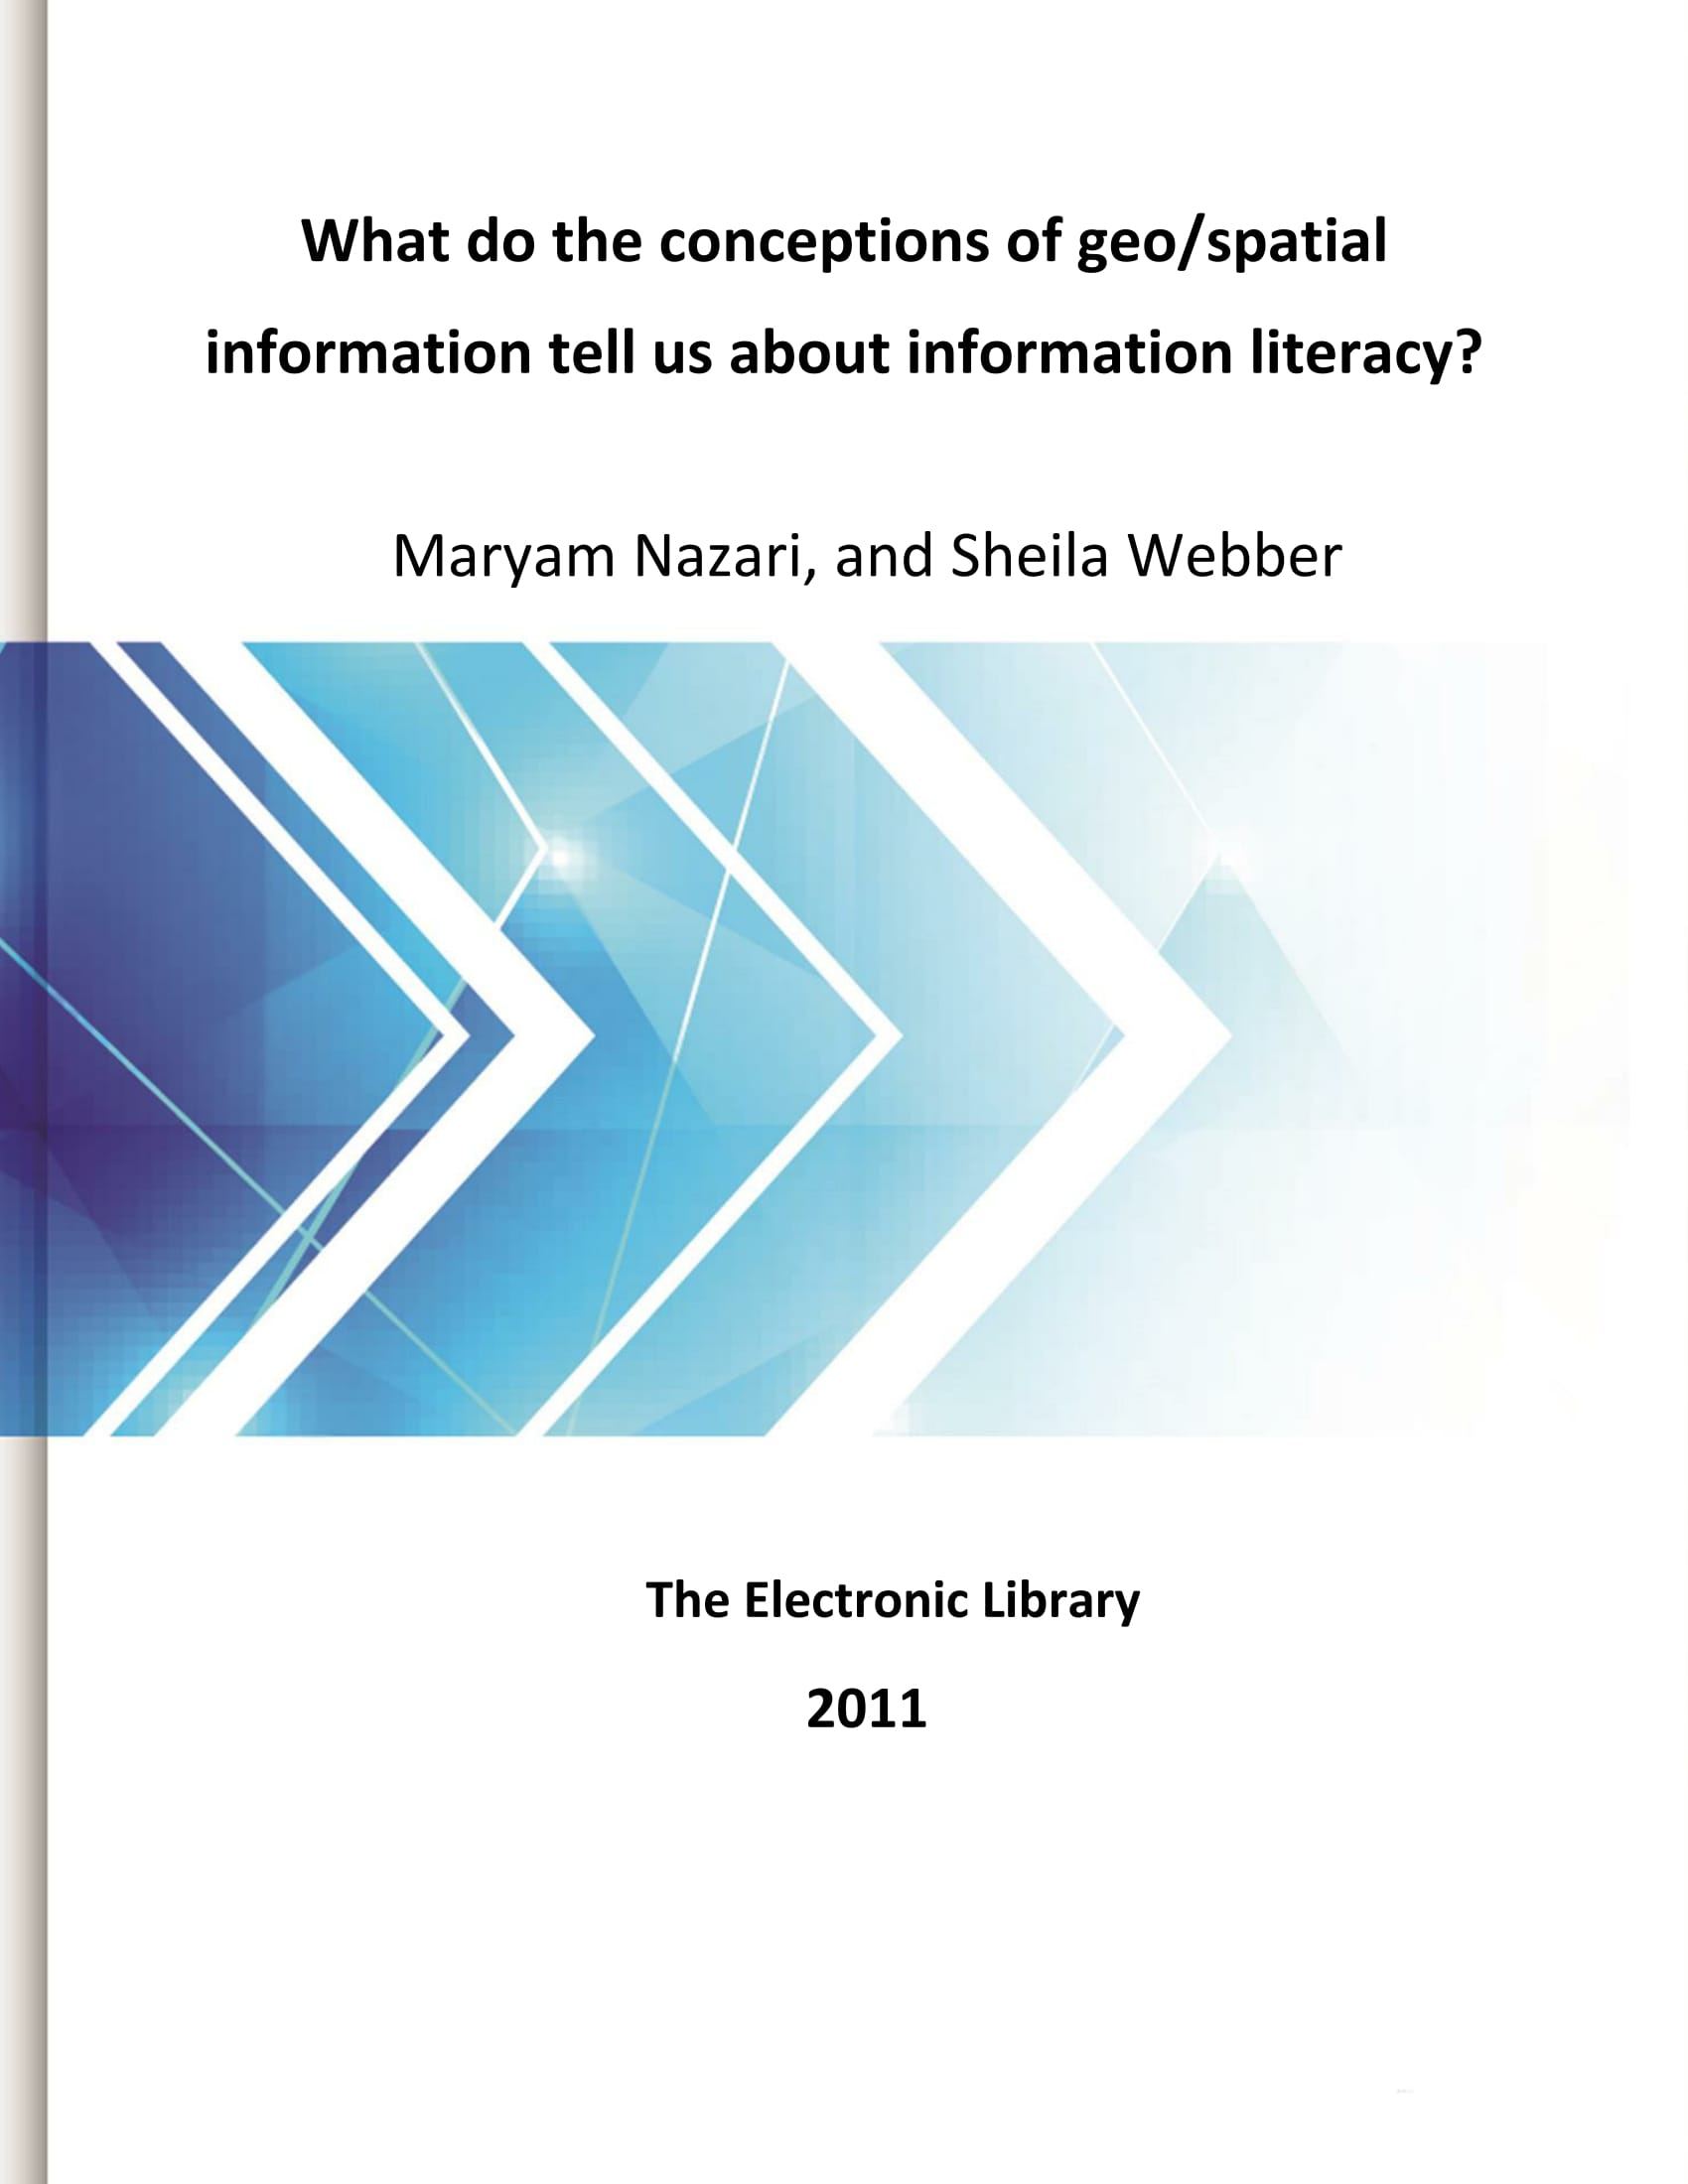 What do the conceptions of geo/spatial information tell us about information literacy?